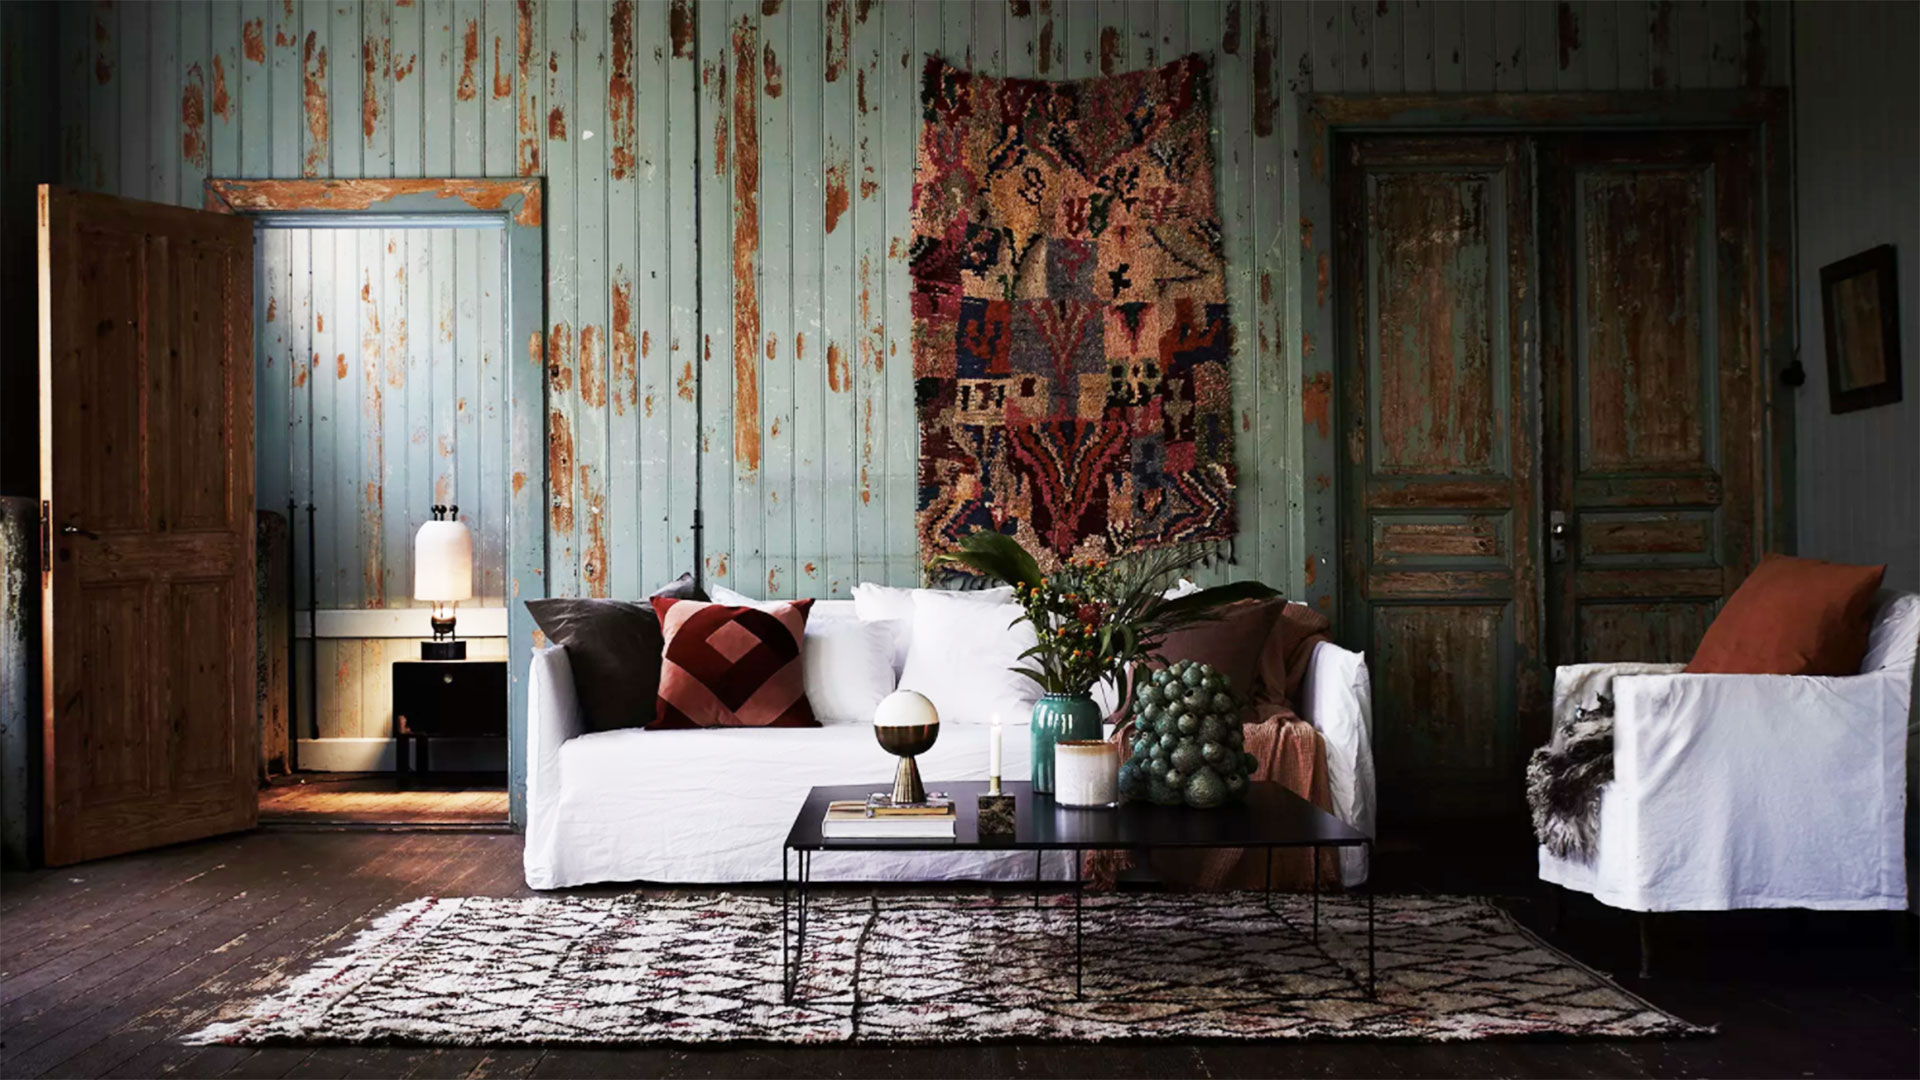 Living Room with Rustic Walls